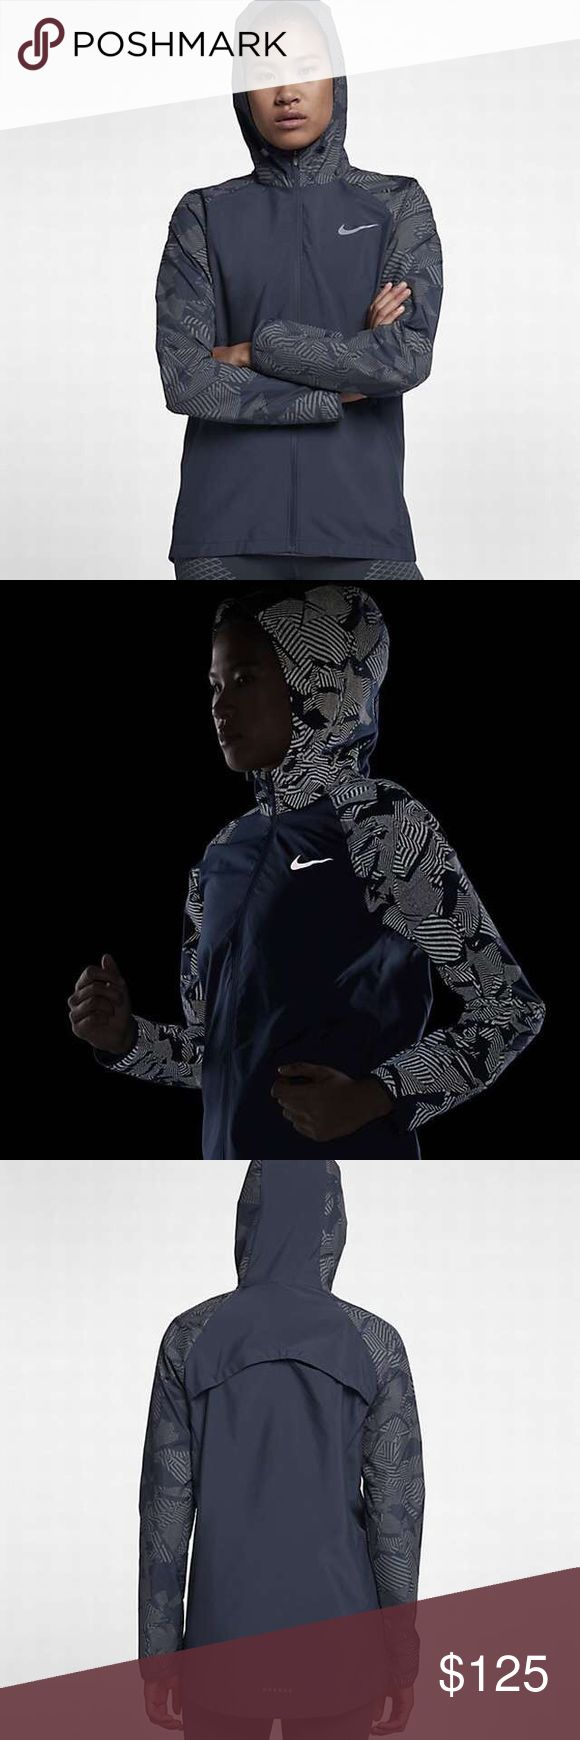 Nike Essential Flash Women's Running Jacket NWT Nike Essential Flash Women's Running Jacket Thunder Blue size small Nike Jackets & Coats